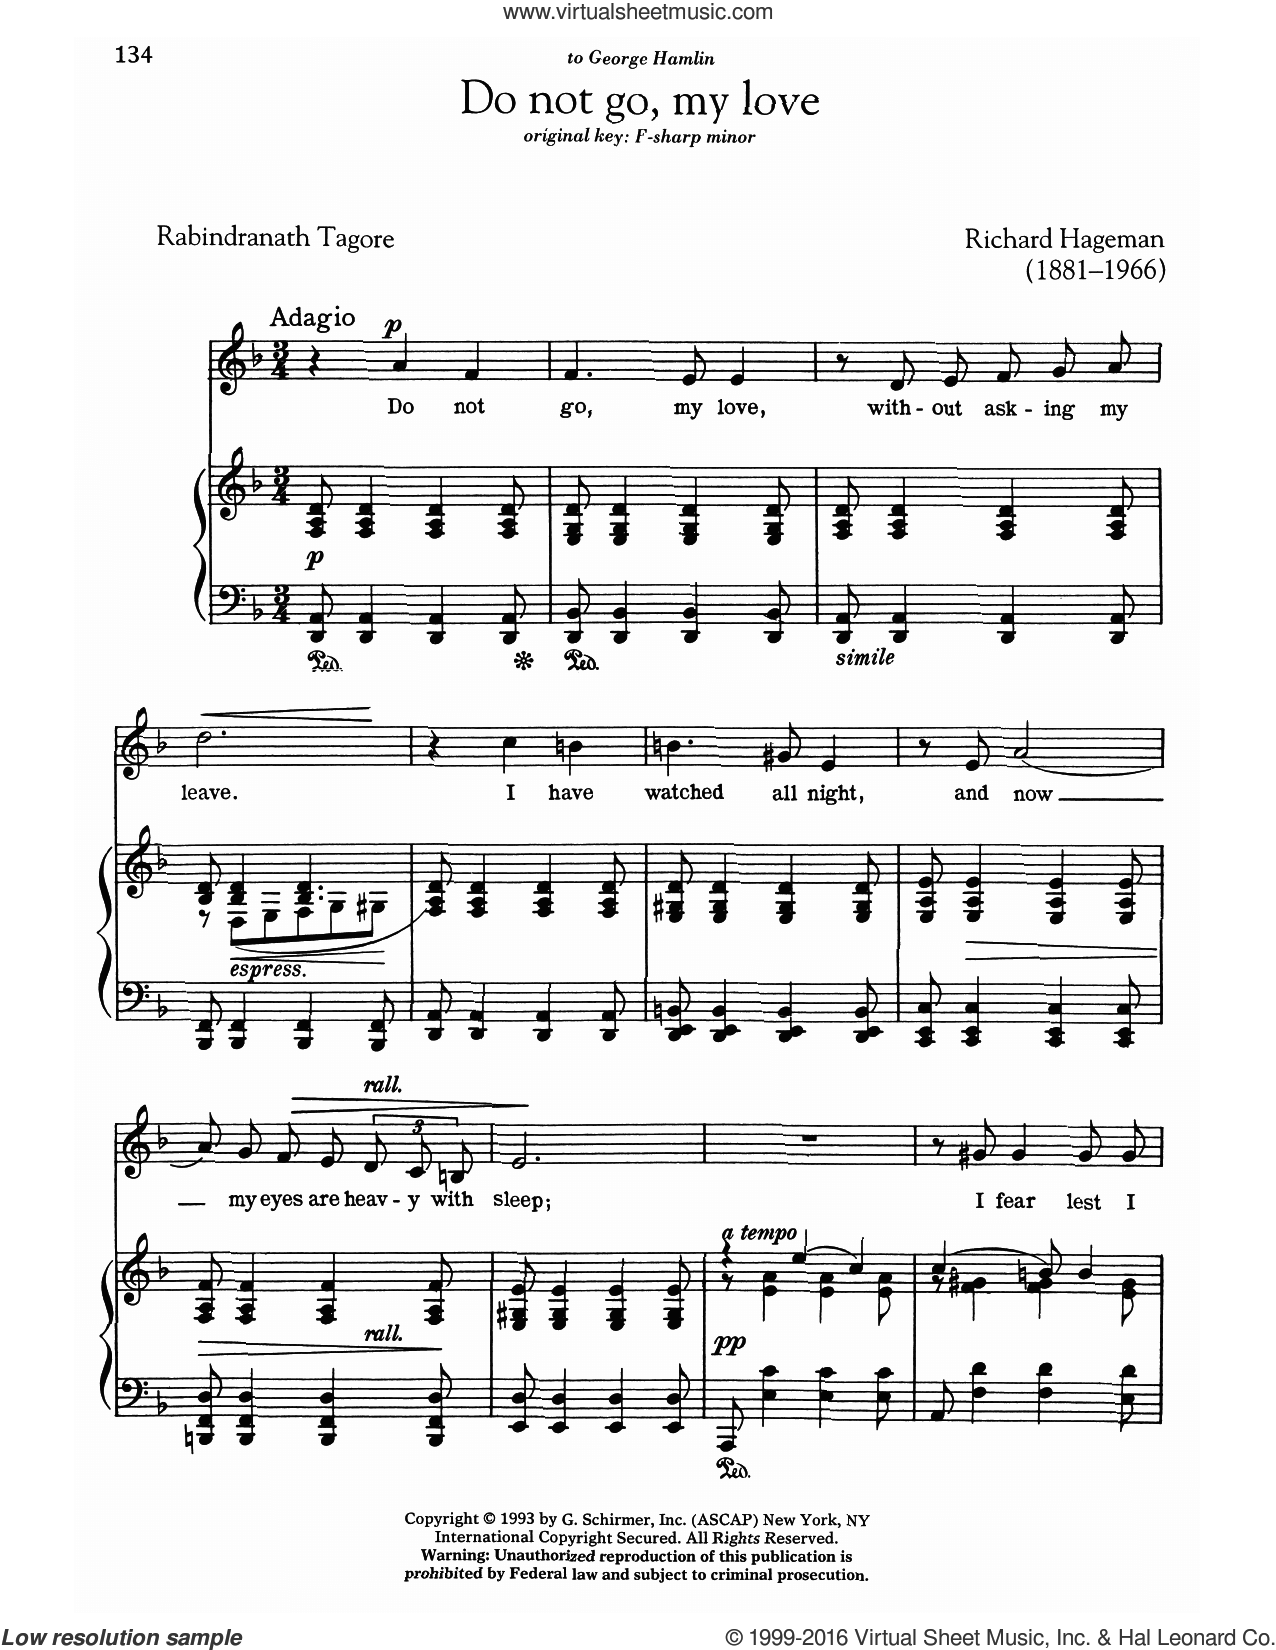 Do Not Go, My Love sheet music for voice and piano (Low ) by Richard Hageman and Rabindranath Tagore. Score Image Preview.